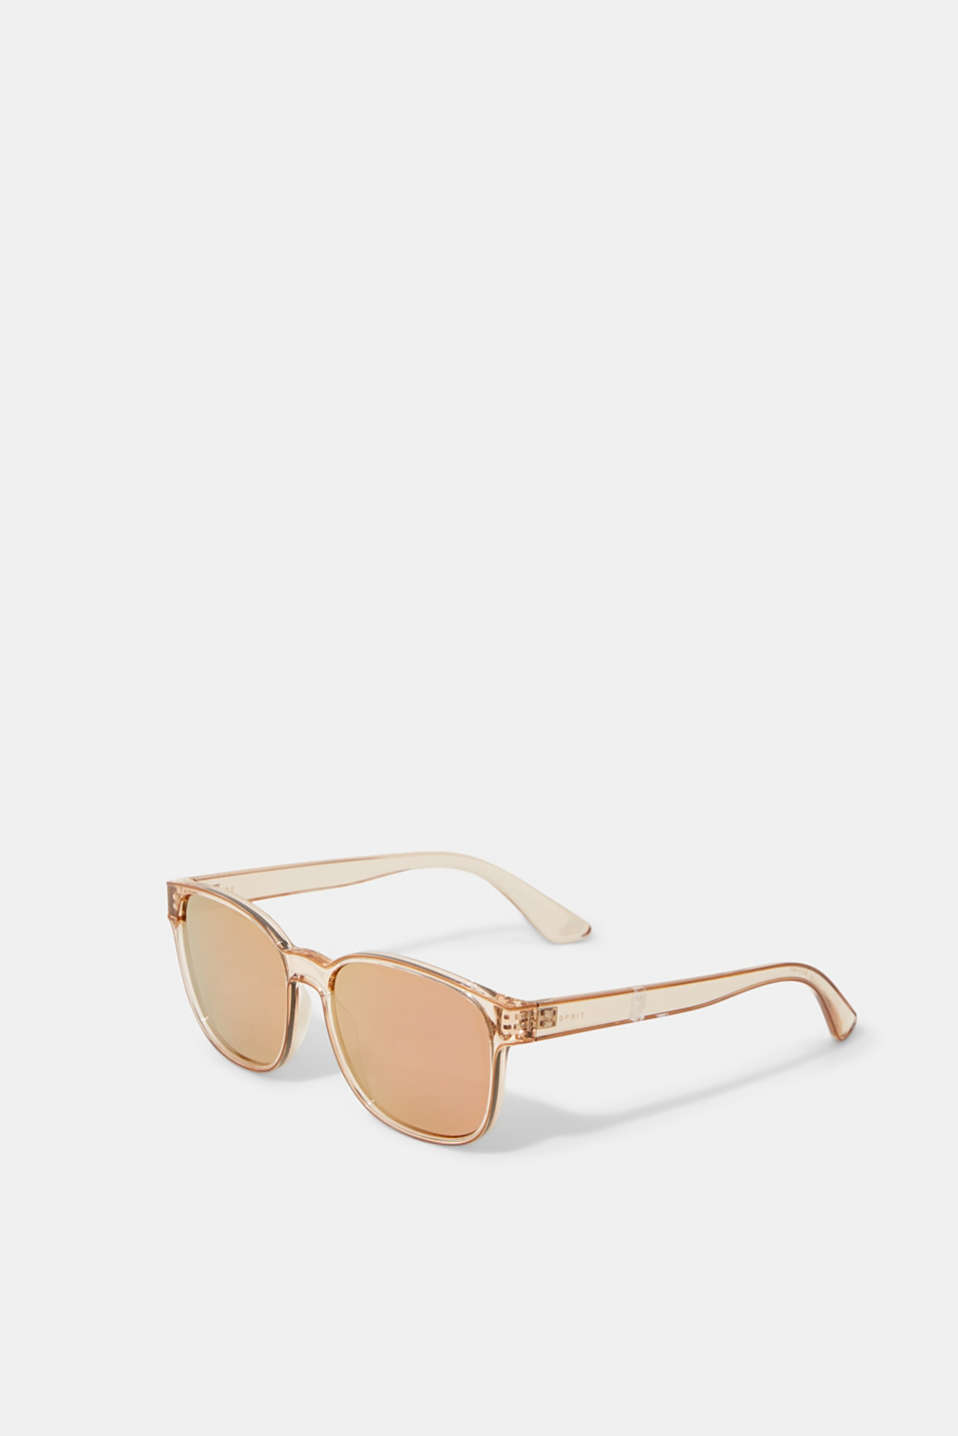 Unisex sunglasses with mirrored lenses, BEIGE, detail image number 3